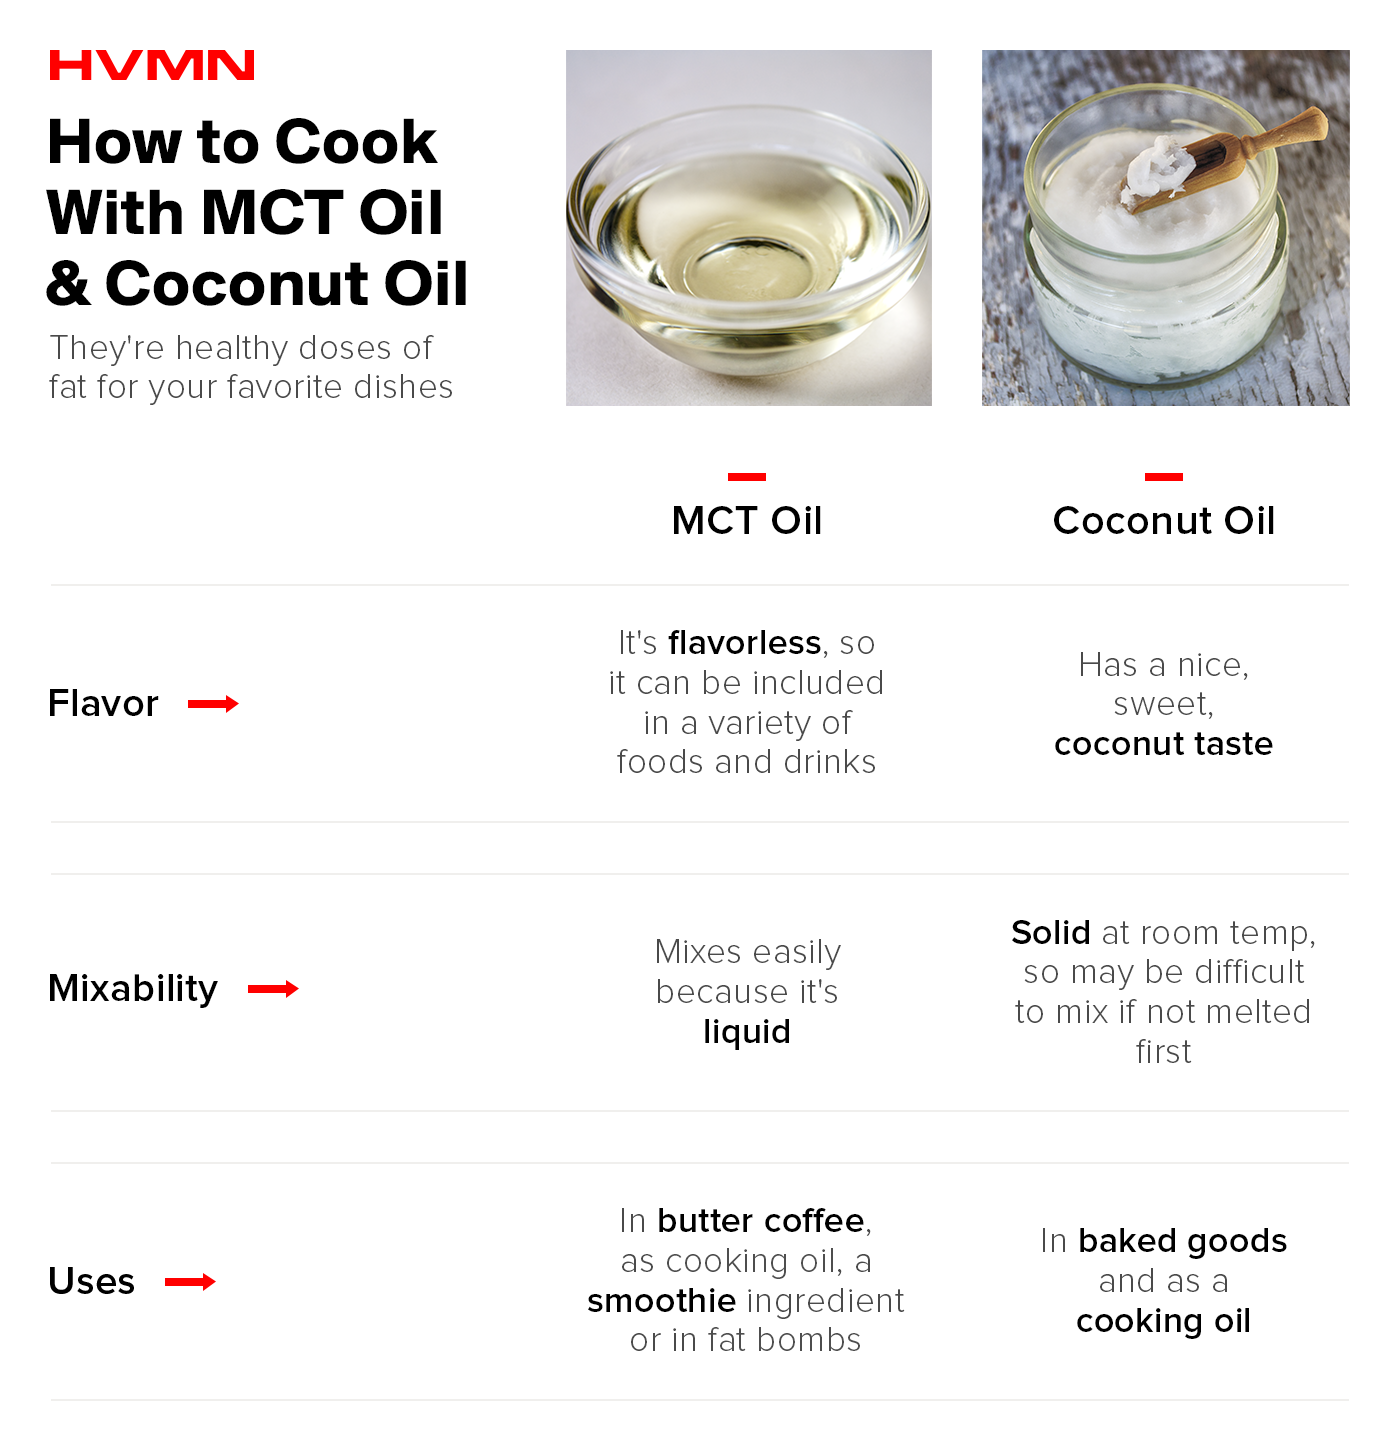 The image describes the differences between MCT Oil and Coconut Oil. MCT Oil is flavorless while Coconut Oil is sweet. MCT oil is easily mixed while Coconut Oil is solid at room temperature. MCT oil is great for butter coffee while coconut oil can be used for cooking.